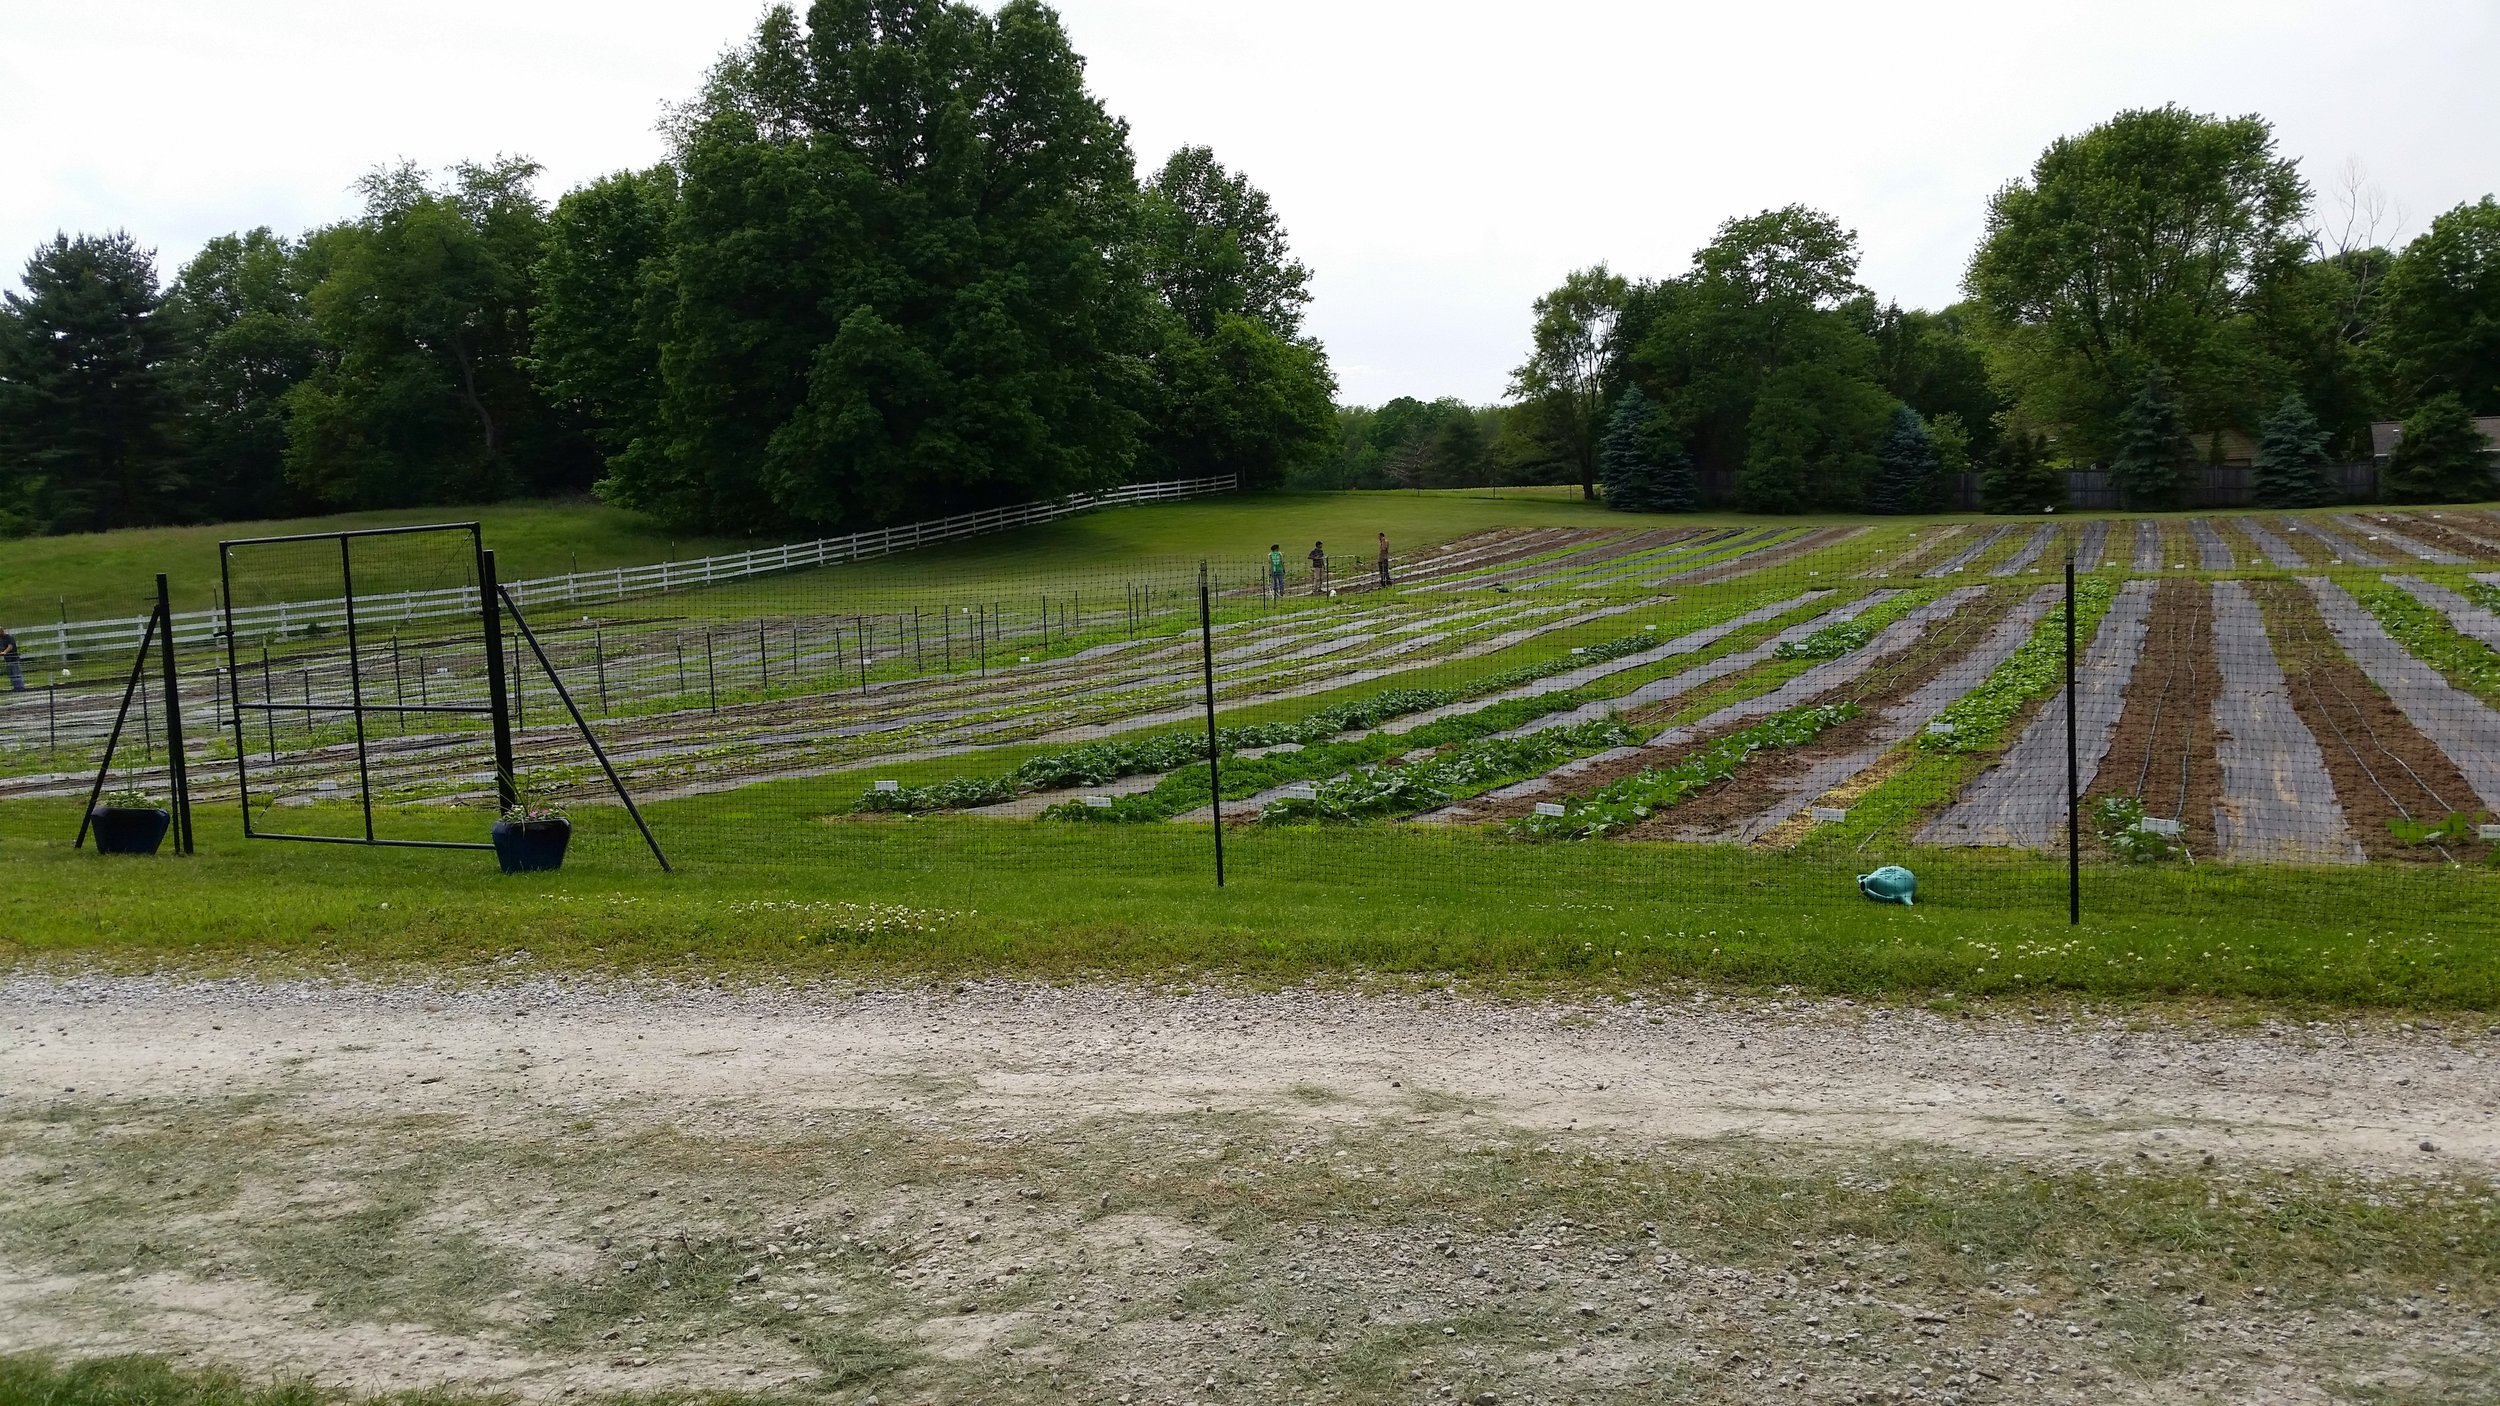 Welcome to the Pickery! Terre Haute's own certified organic vegetable farm. Pick your own or select items from our farm stand.